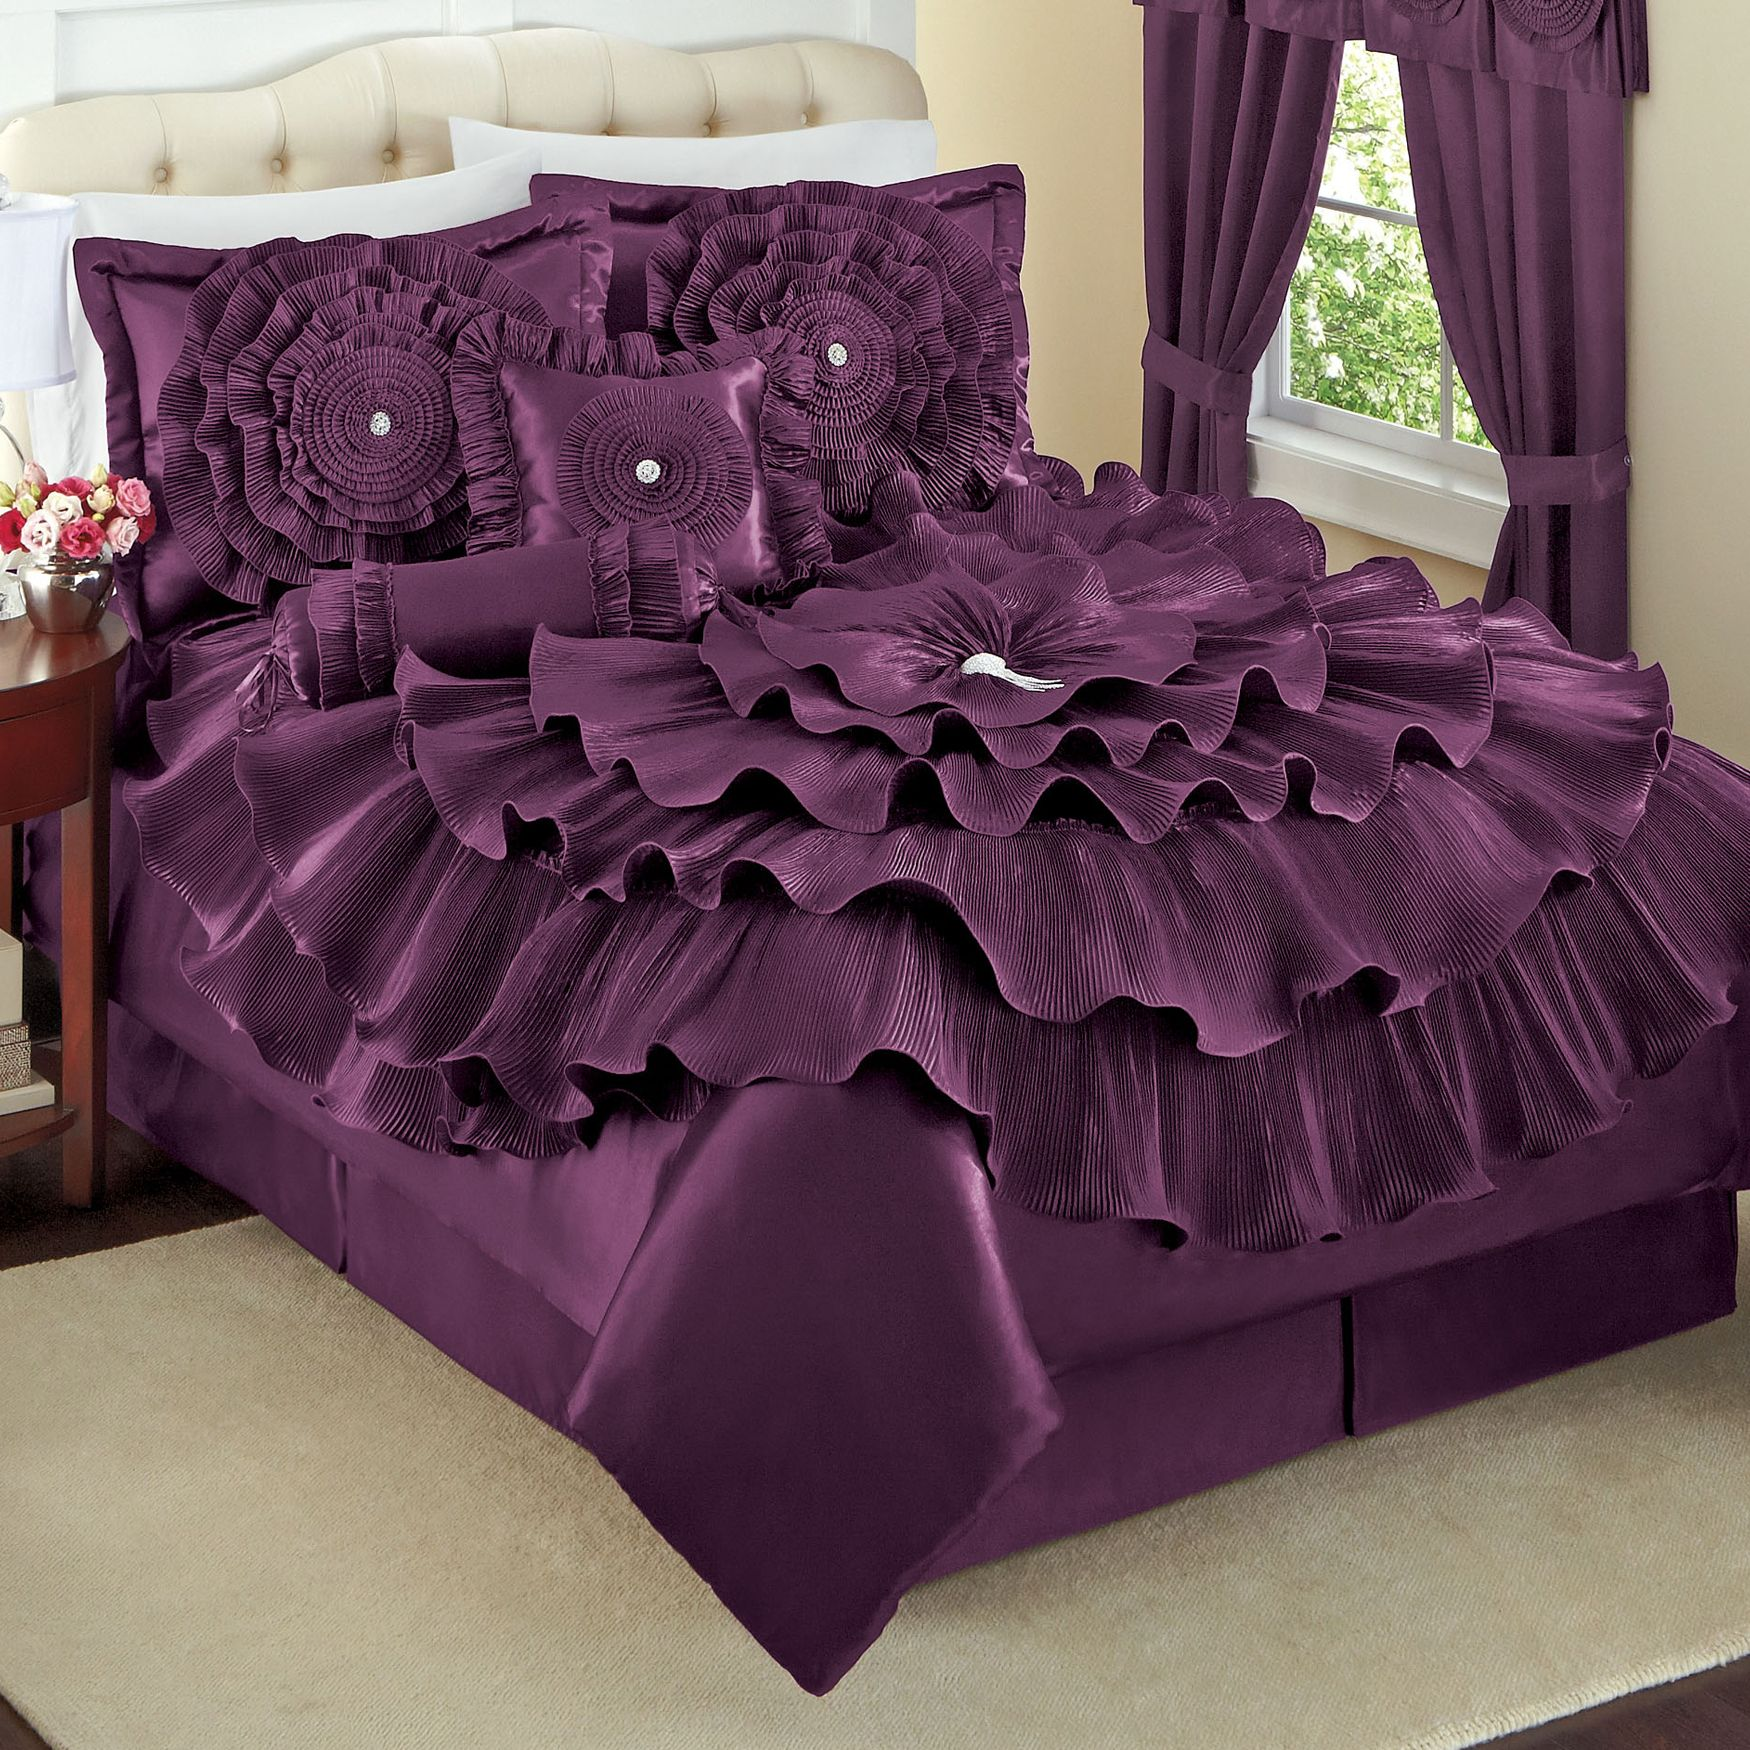 Romance Bed 5 Pc Comforter Set Collection With Images